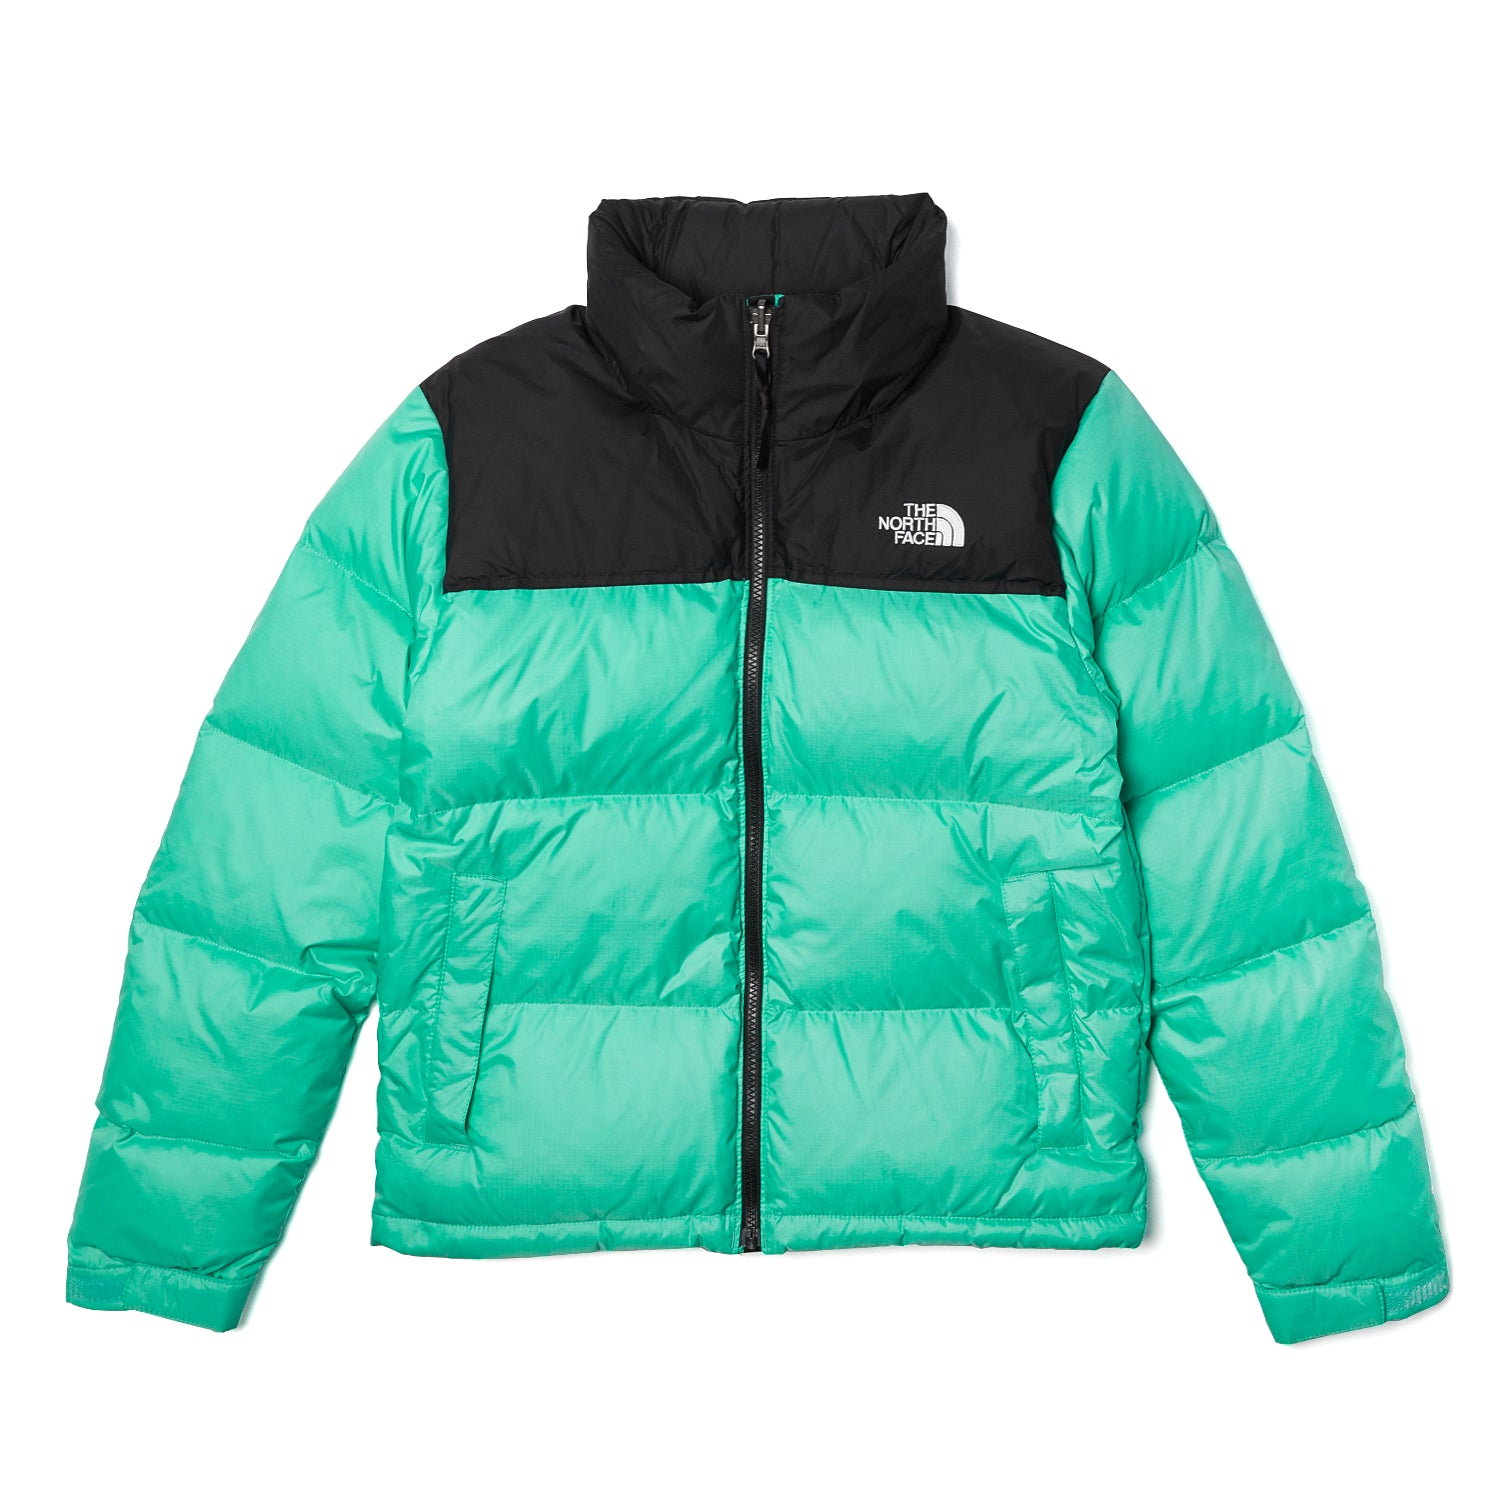 e46f6eb57 Women's The North Face 1996 Retro Nuptse Jacket Retro Green